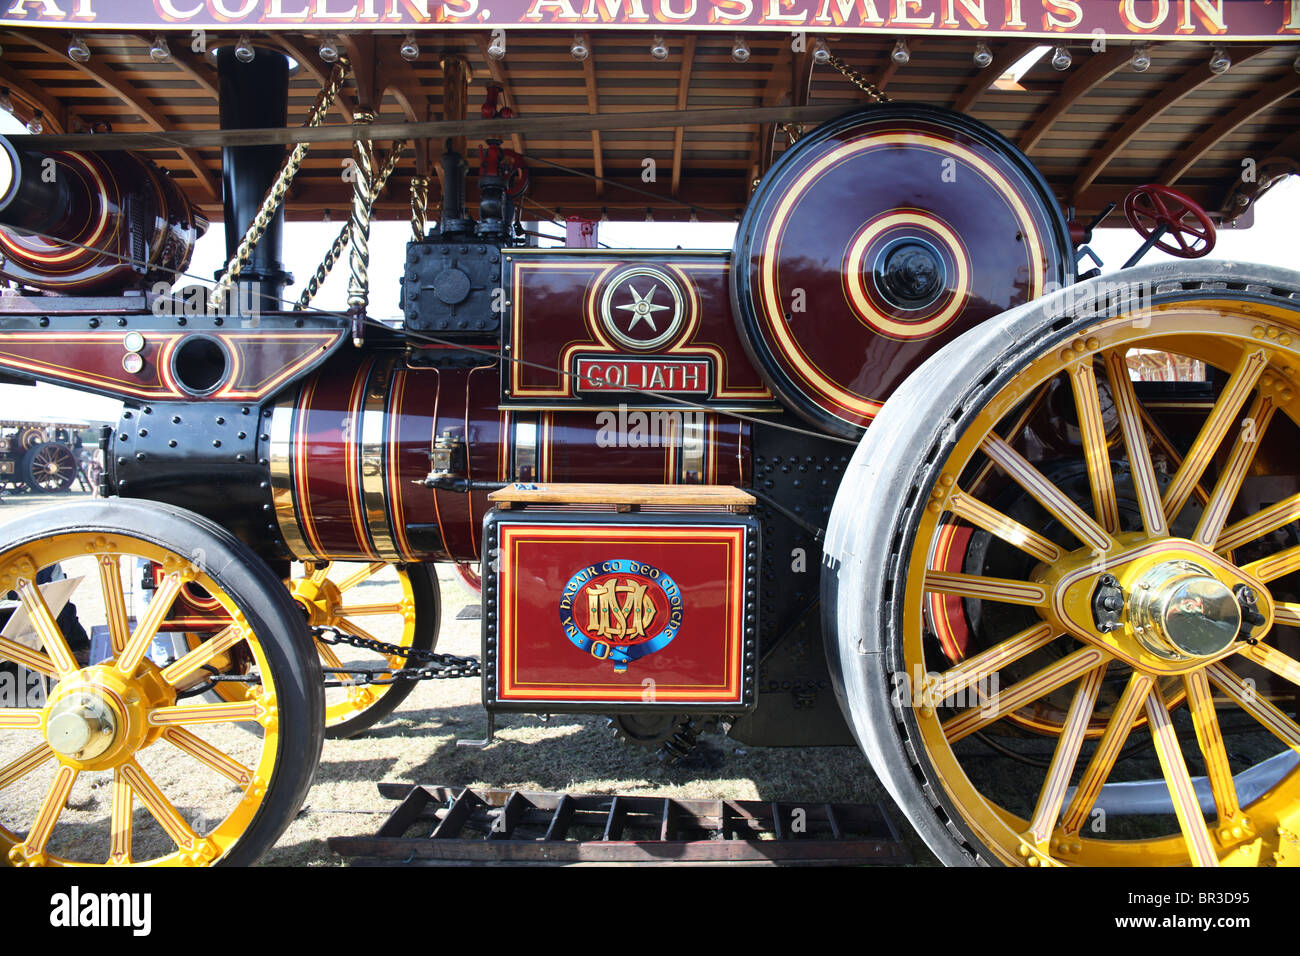 'Goliath' showman's steam engine. - Stock Image